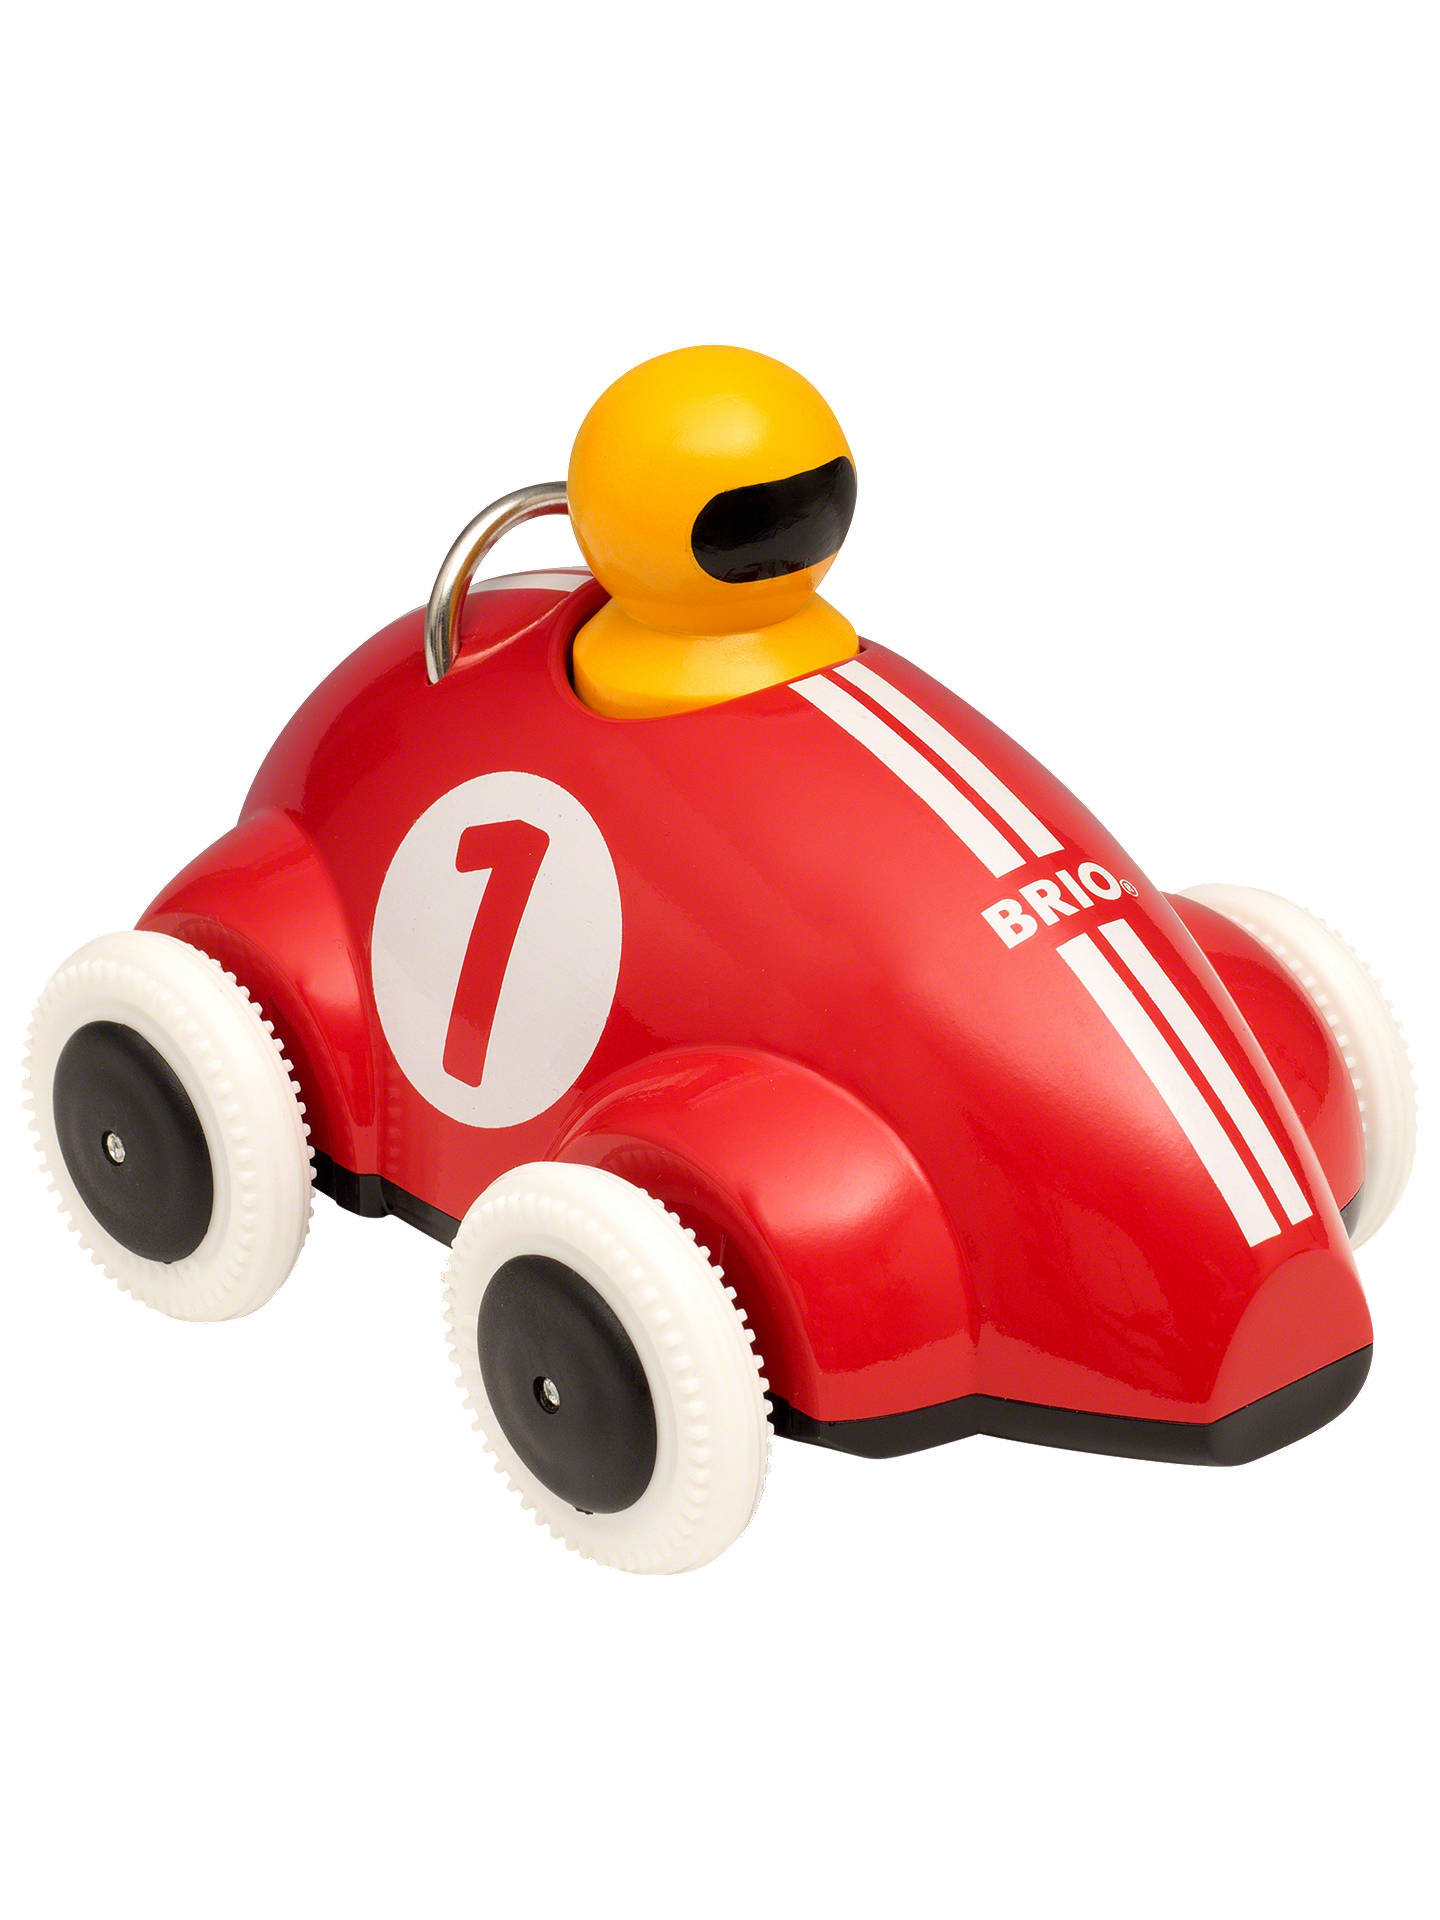 Buy Brio Push And Go Racer Car Wooden Toy Online at johnlewis.com